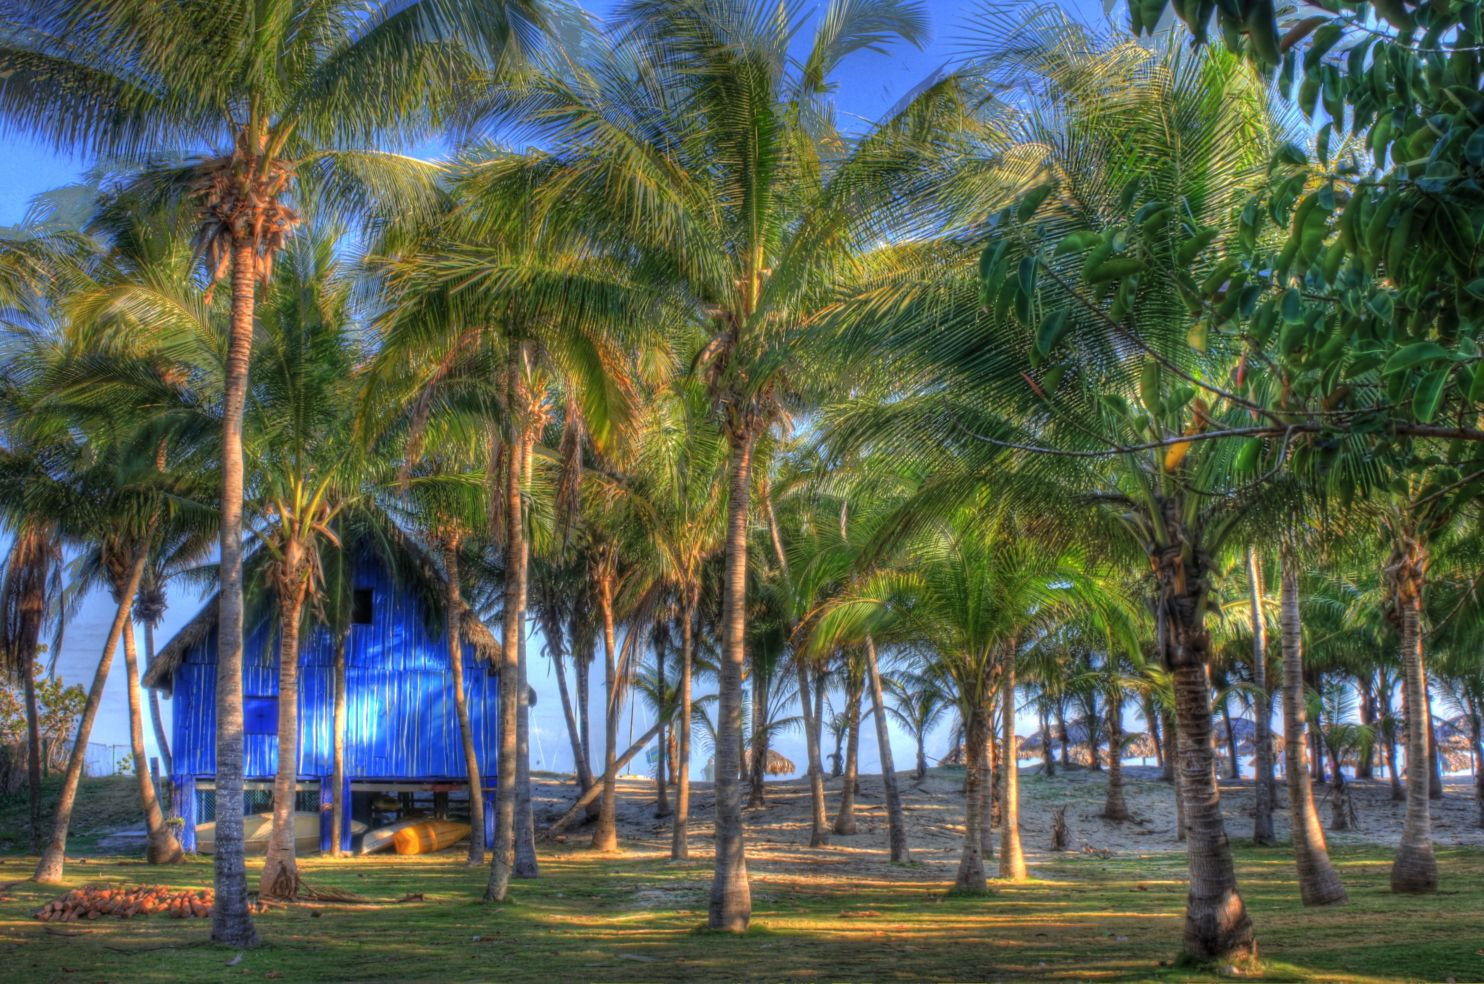 Boat shed and Palm trees on the beach in cuba